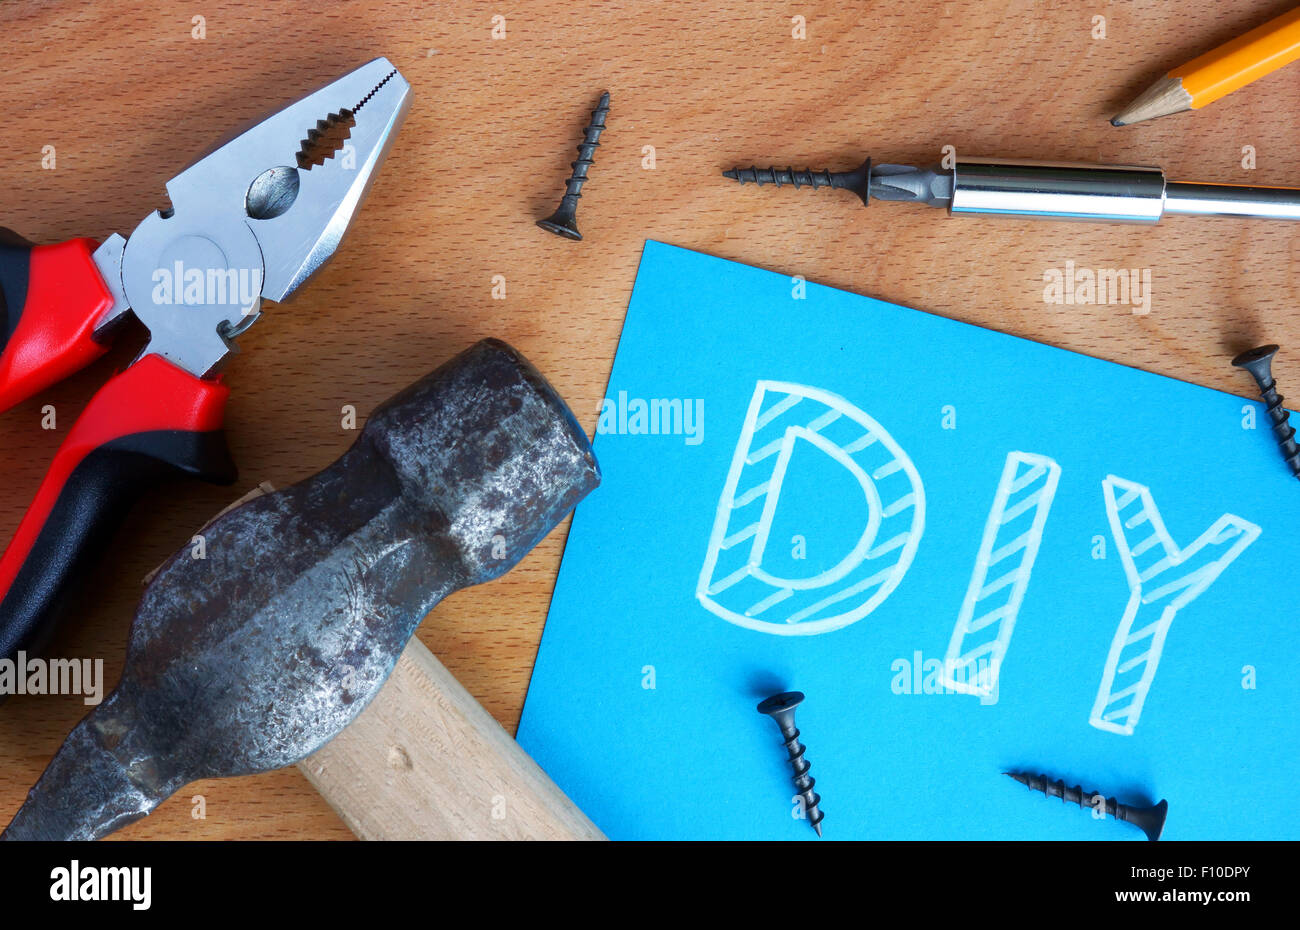 Blue paper with diy do it yourself tools kit on a wood background blue paper with diy do it yourself tools kit on a wood background solutioingenieria Gallery